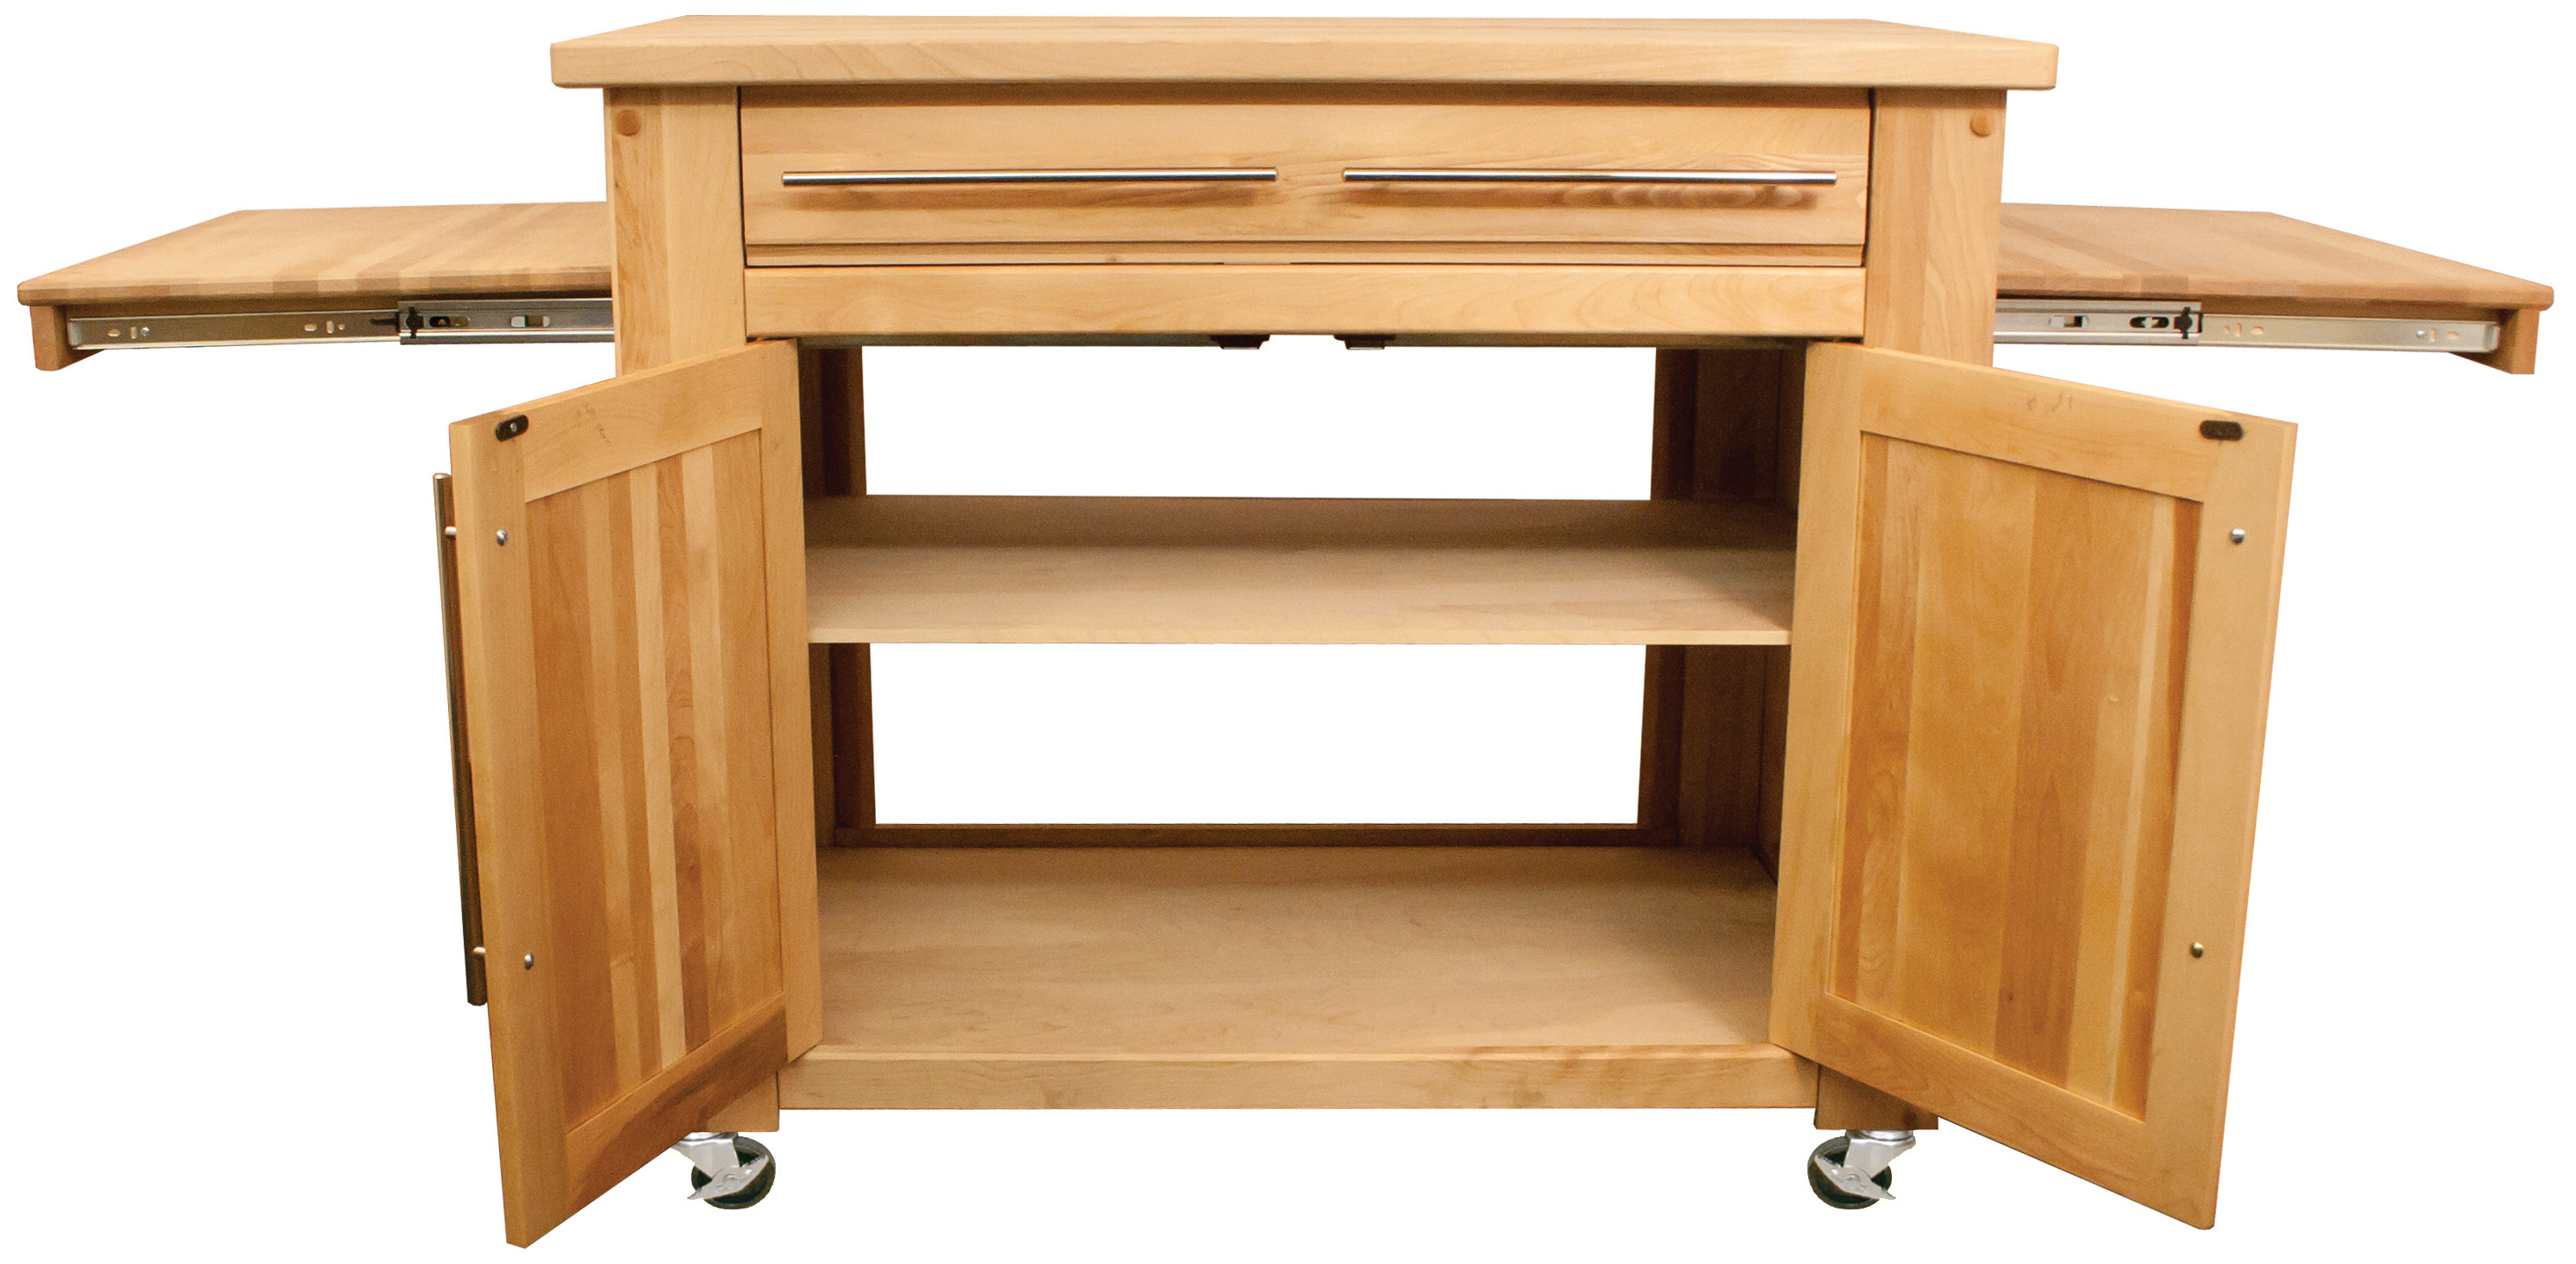 Chopping Block Kitchen Island Catskill Empire Kitchen Island Pull Out Leaves